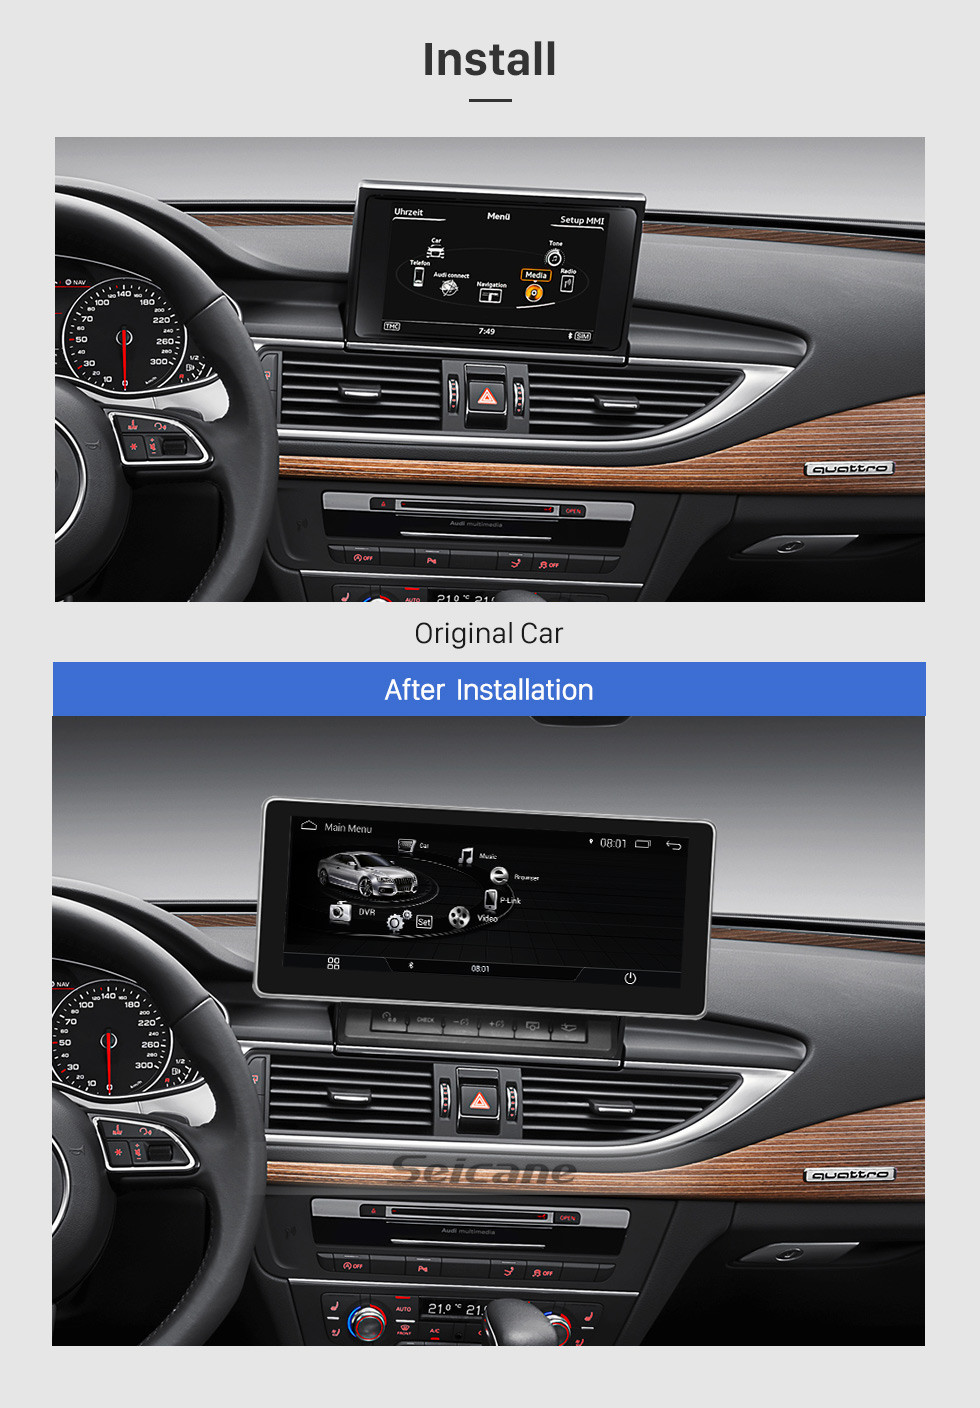 Seicane 10.25 Inch Android 9.0 Car Radio Stereo Head Unit GPS Navigation System for 2011-2015 AUDI A6 with touchscreen WIFI FM AM Bluetooth music Support USB Steering Wheel Control Rearview Camera